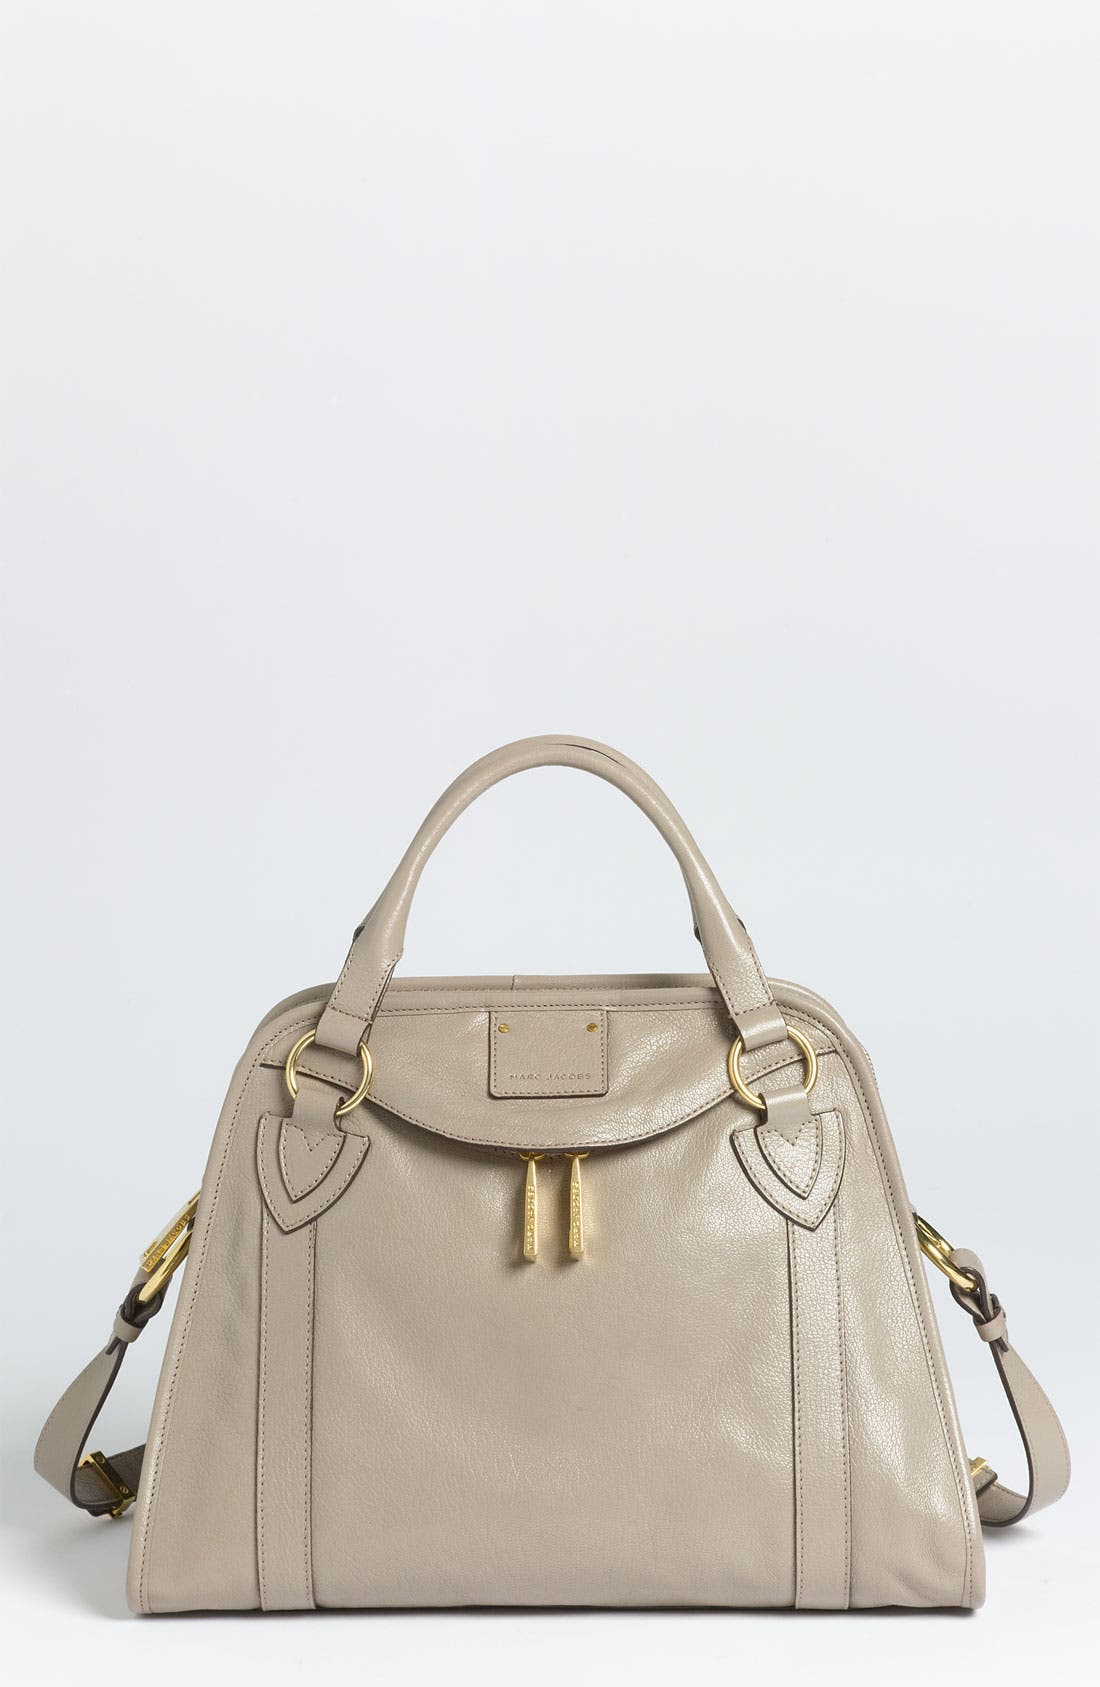 Alternate Image 1 Selected - MARC JACOBS 'Classic Wellington' Leather Satchel